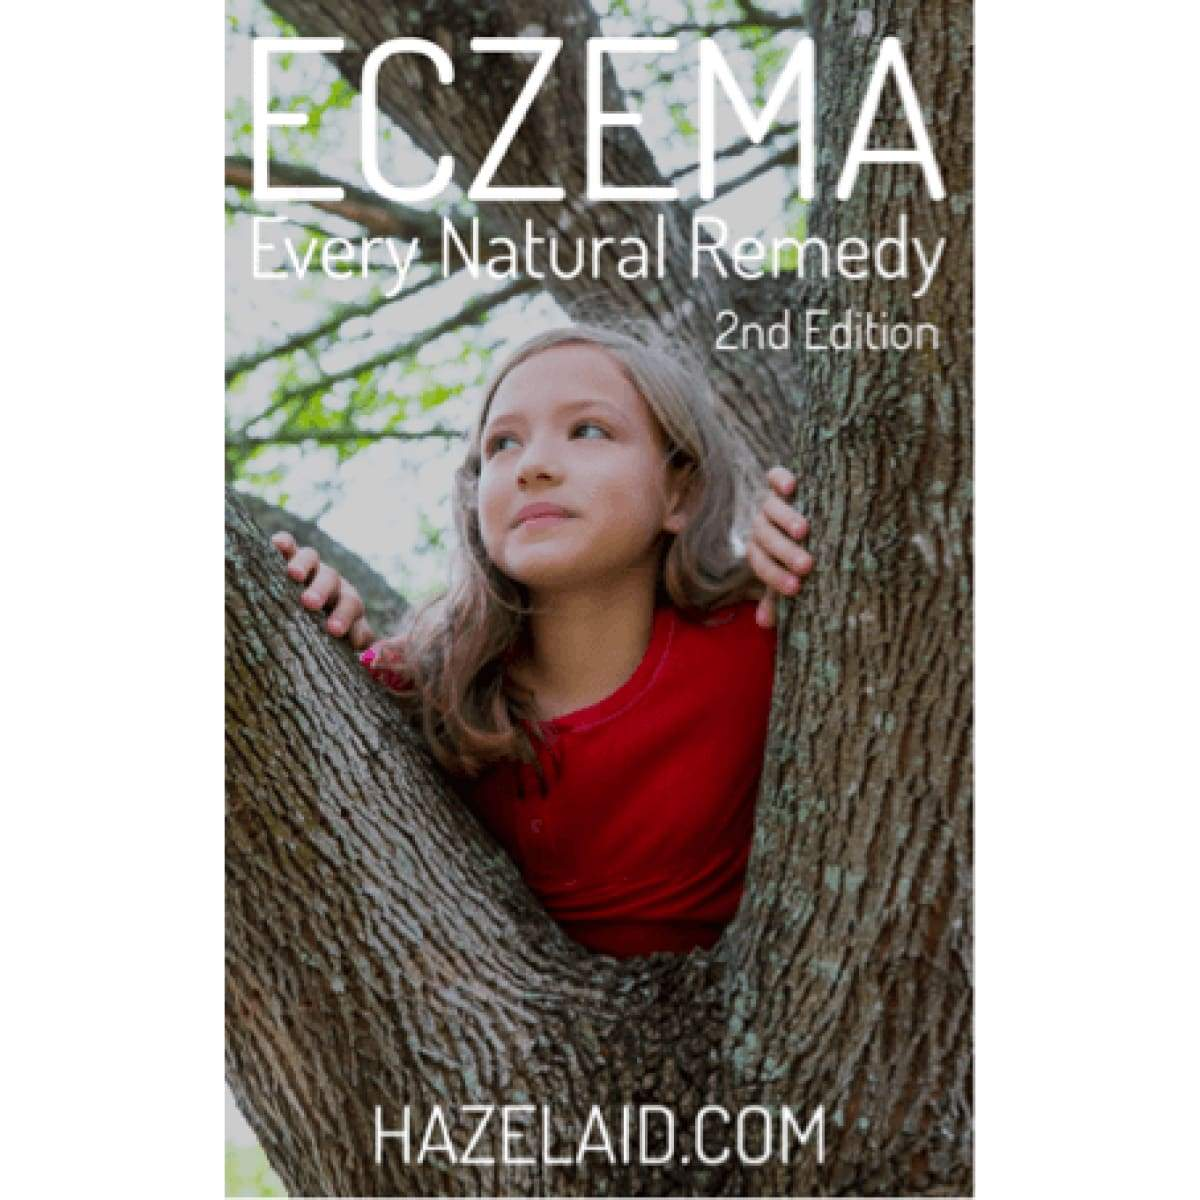 Eczema - Every Natural Remedy - 2Nd Edition - Ebook